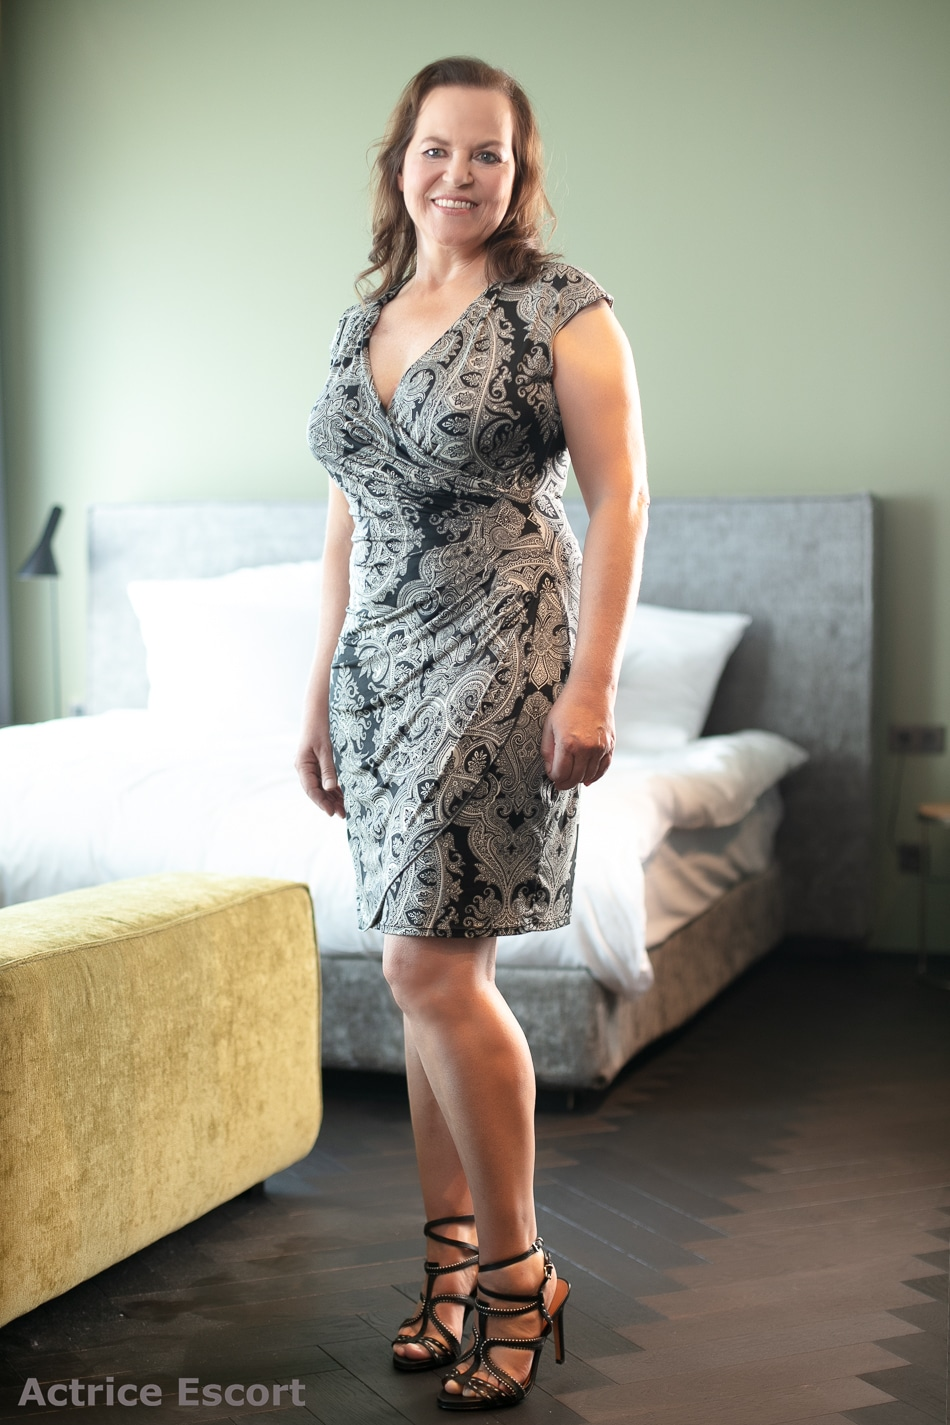 Bettina Escortservice Duesseldorf(13)